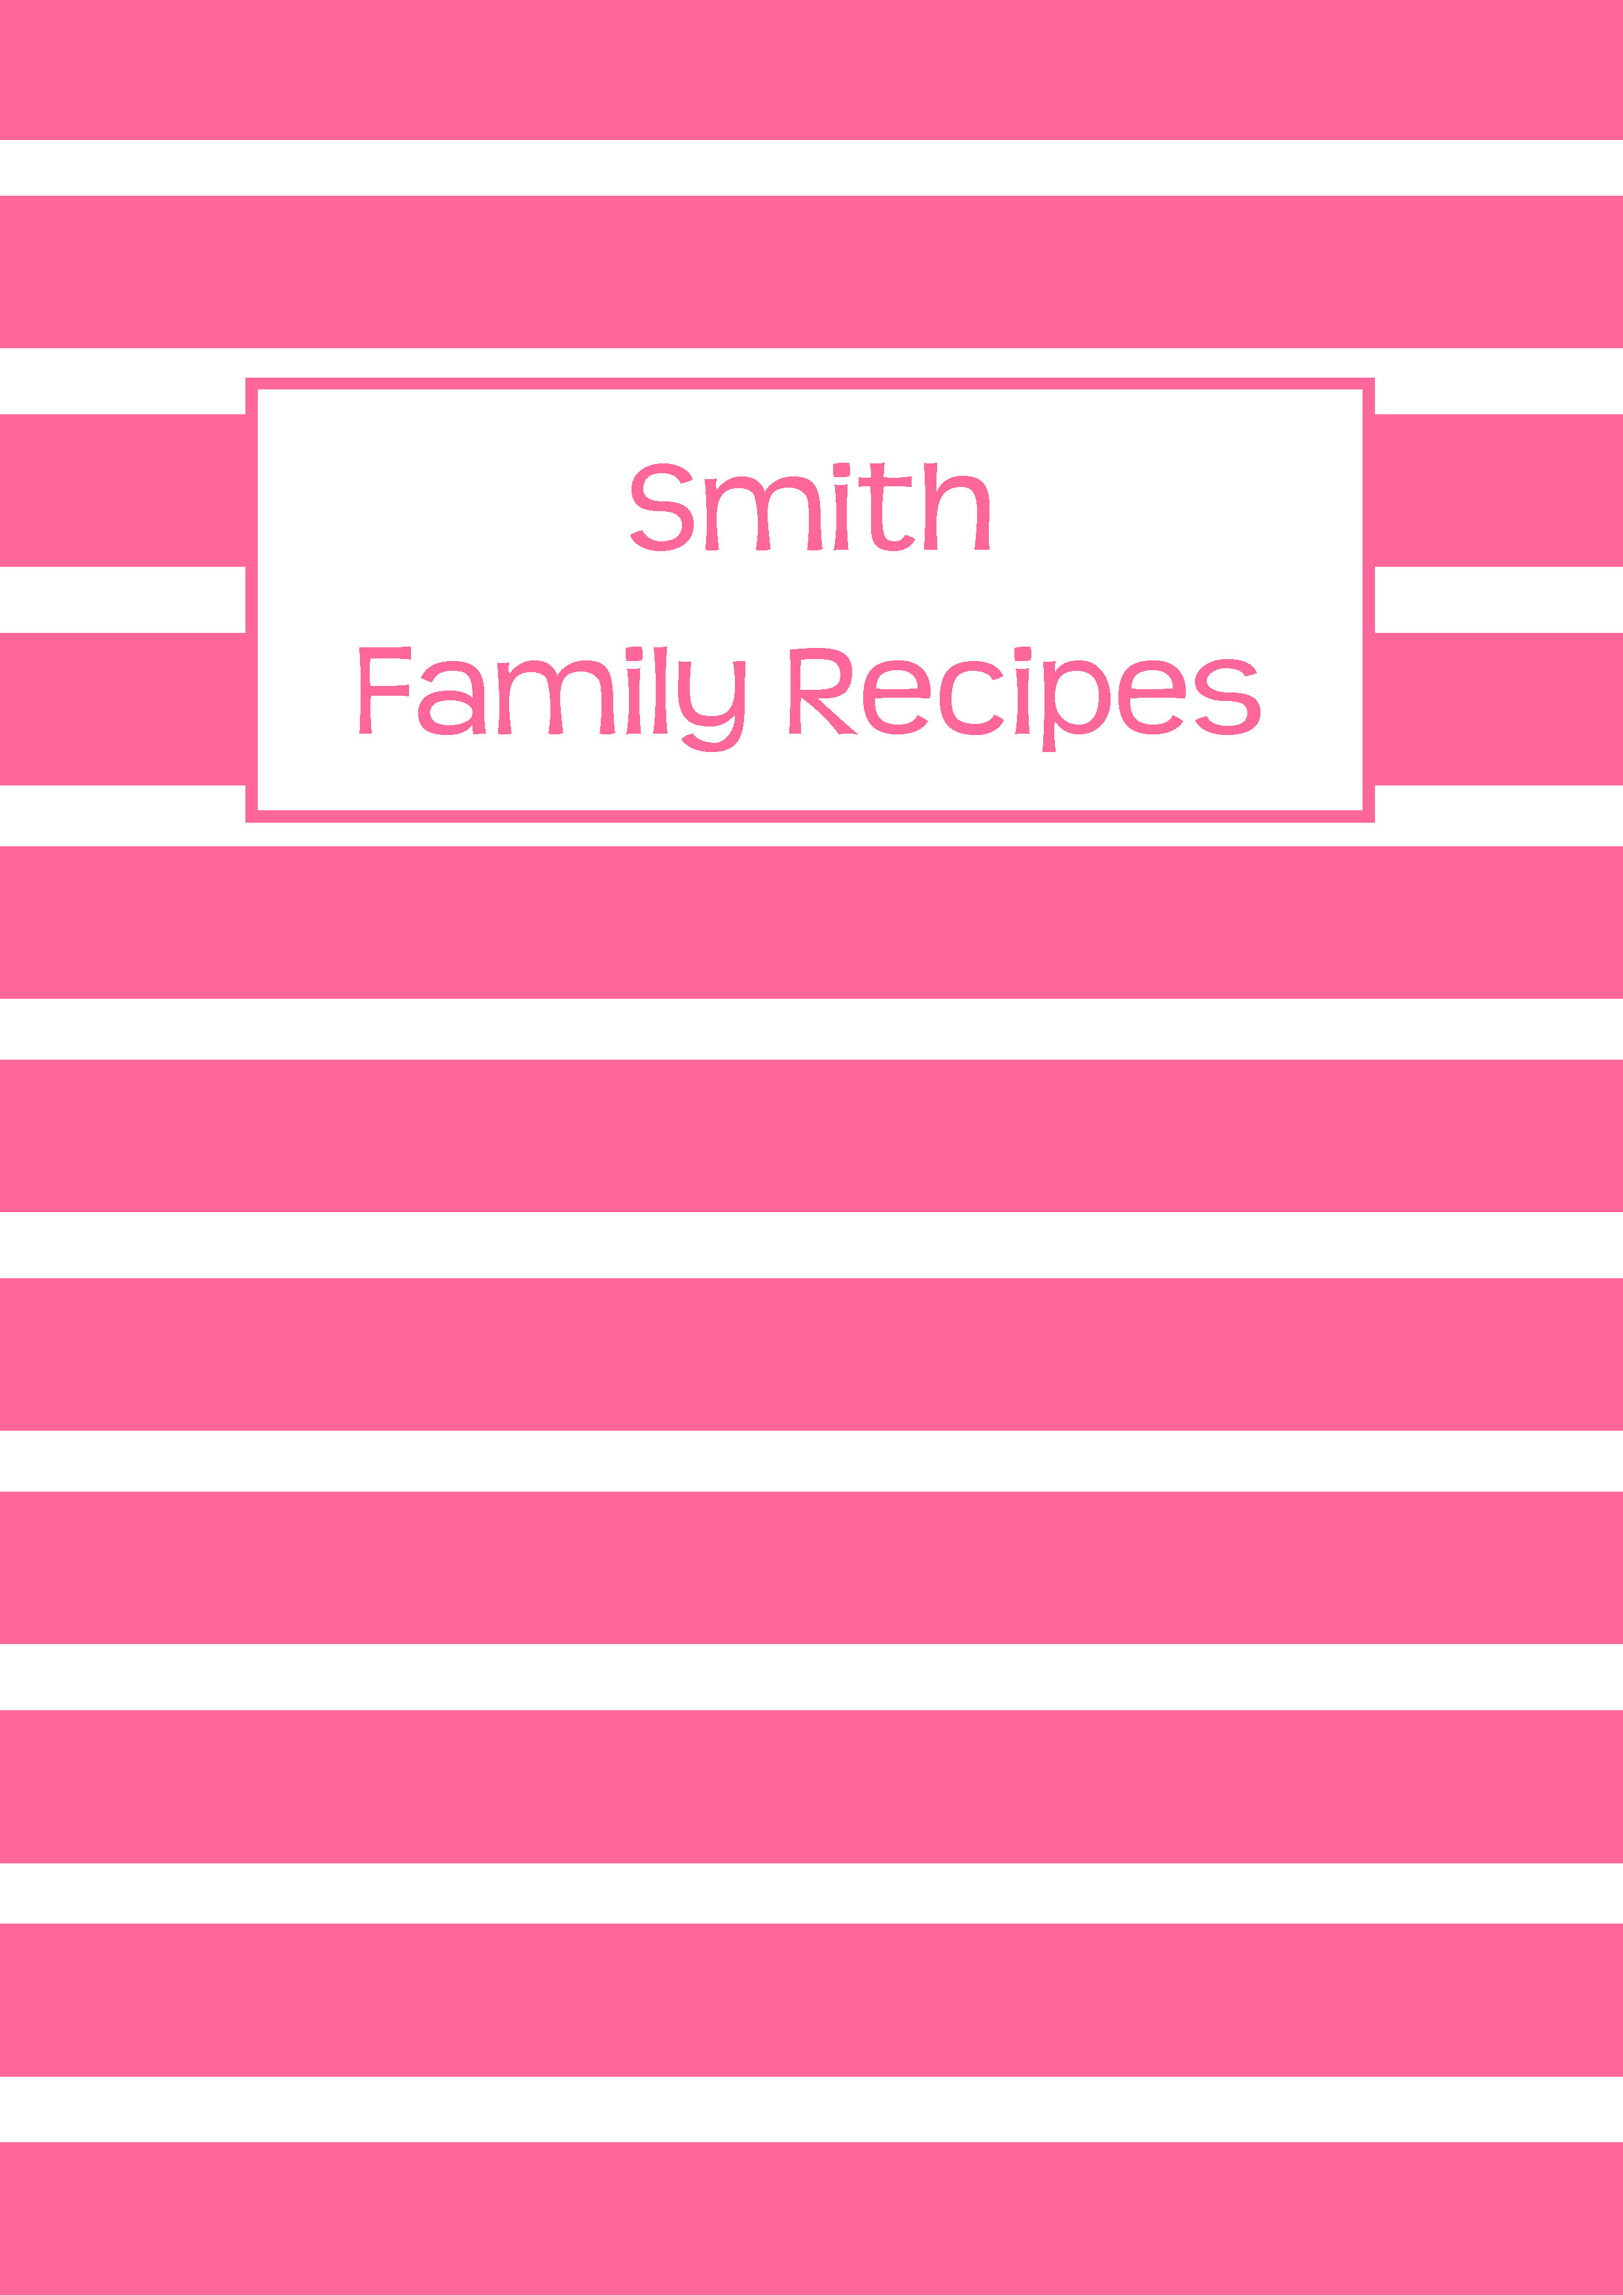 Recipe Binder Cover Page Pink Allaboutthehouse Printables Spine Template Free